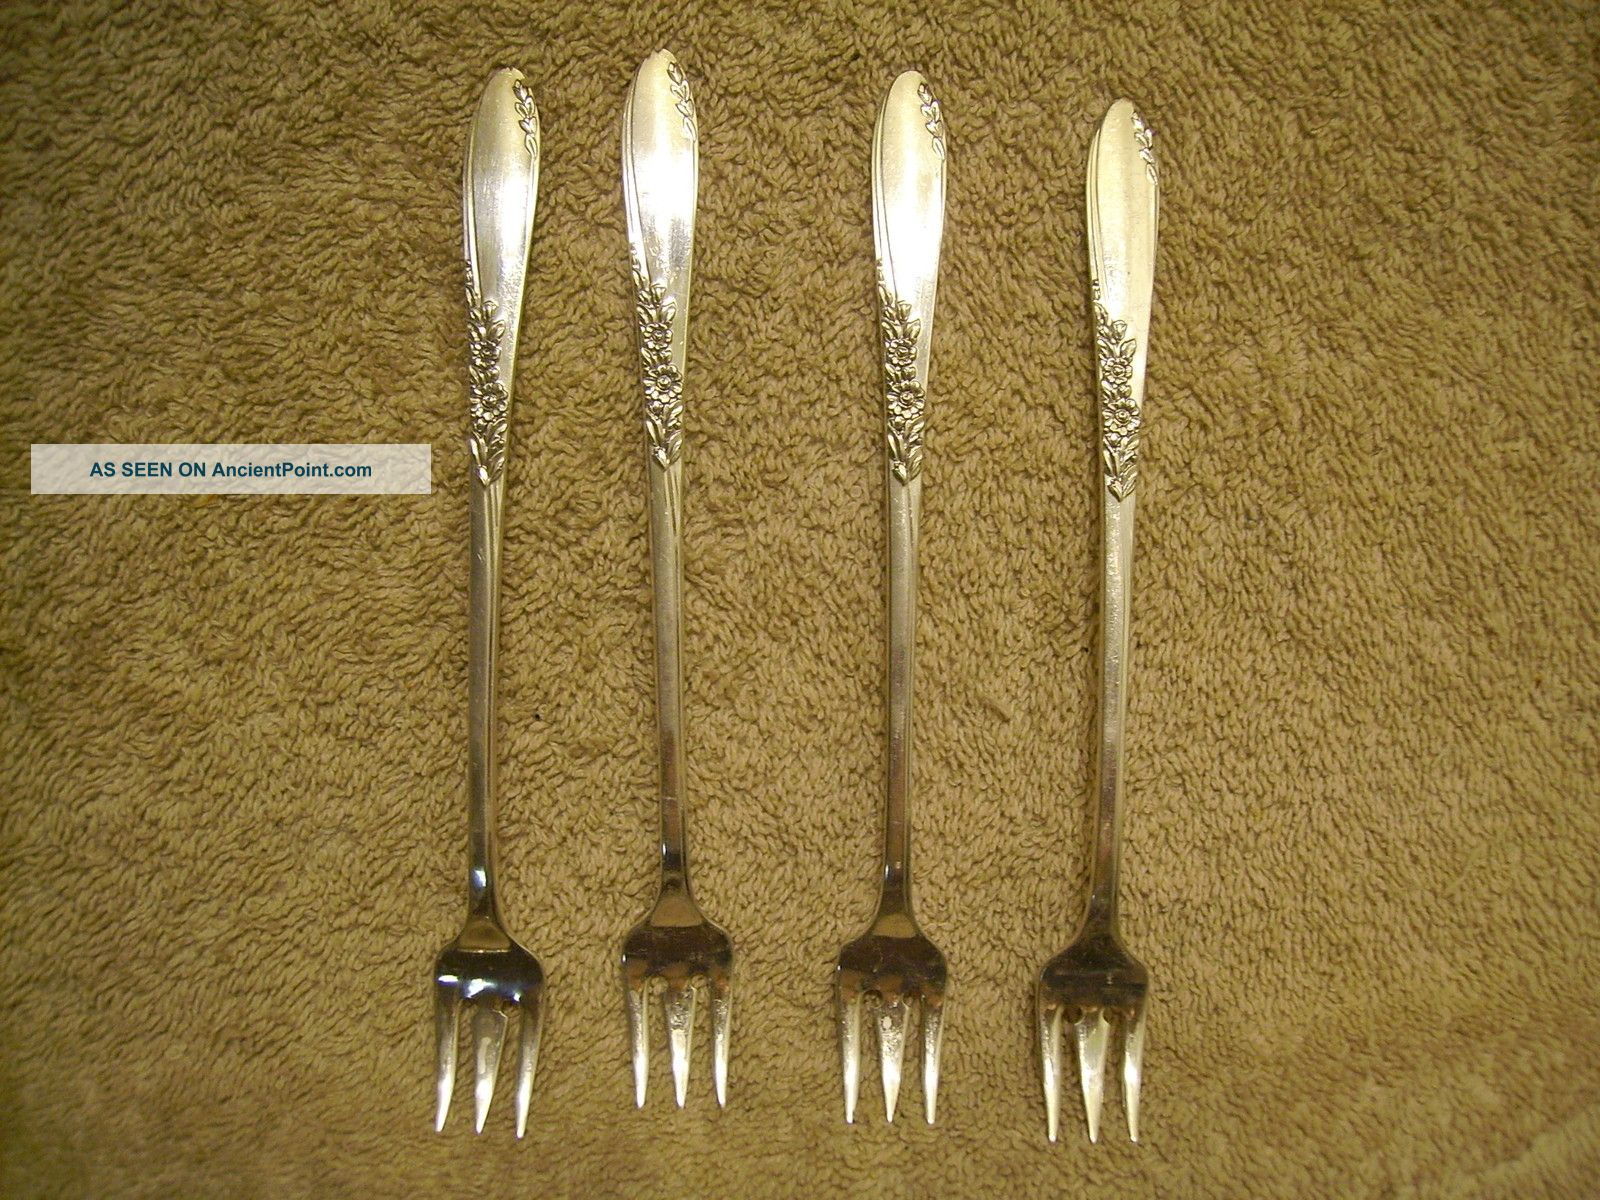 4 Rogers 1954 Country Lane Seafood Cocktail Forks Oneida Ltd Silverplate Oneida/Wm. A. Rogers photo